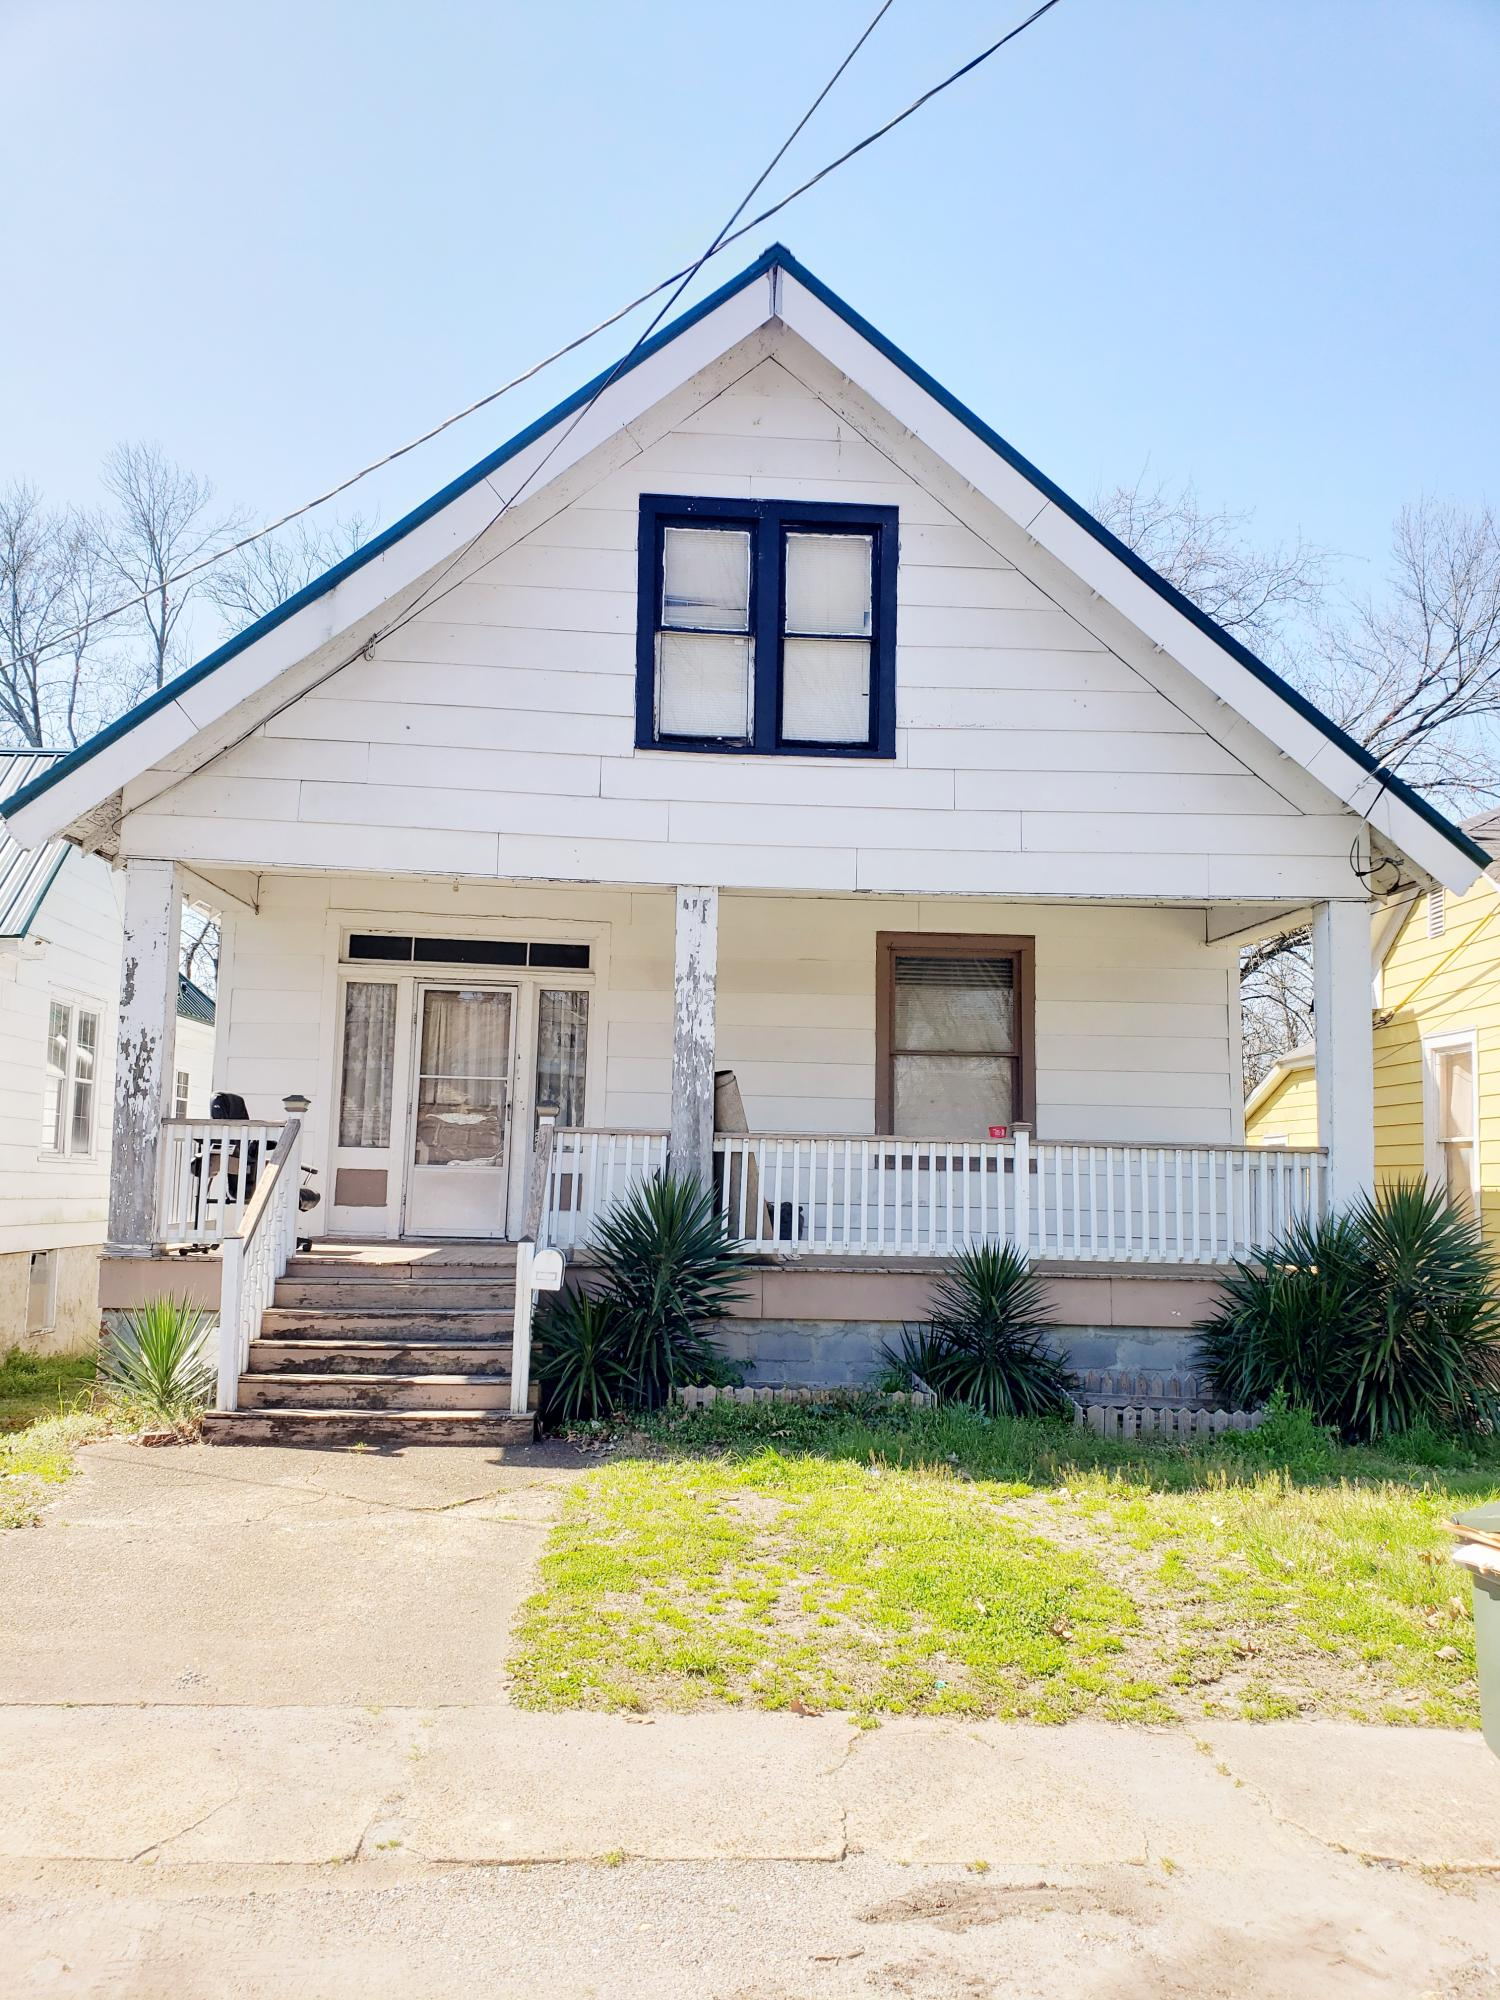 1605 S Orchard Knob Ave, Chattanooga, Tennessee